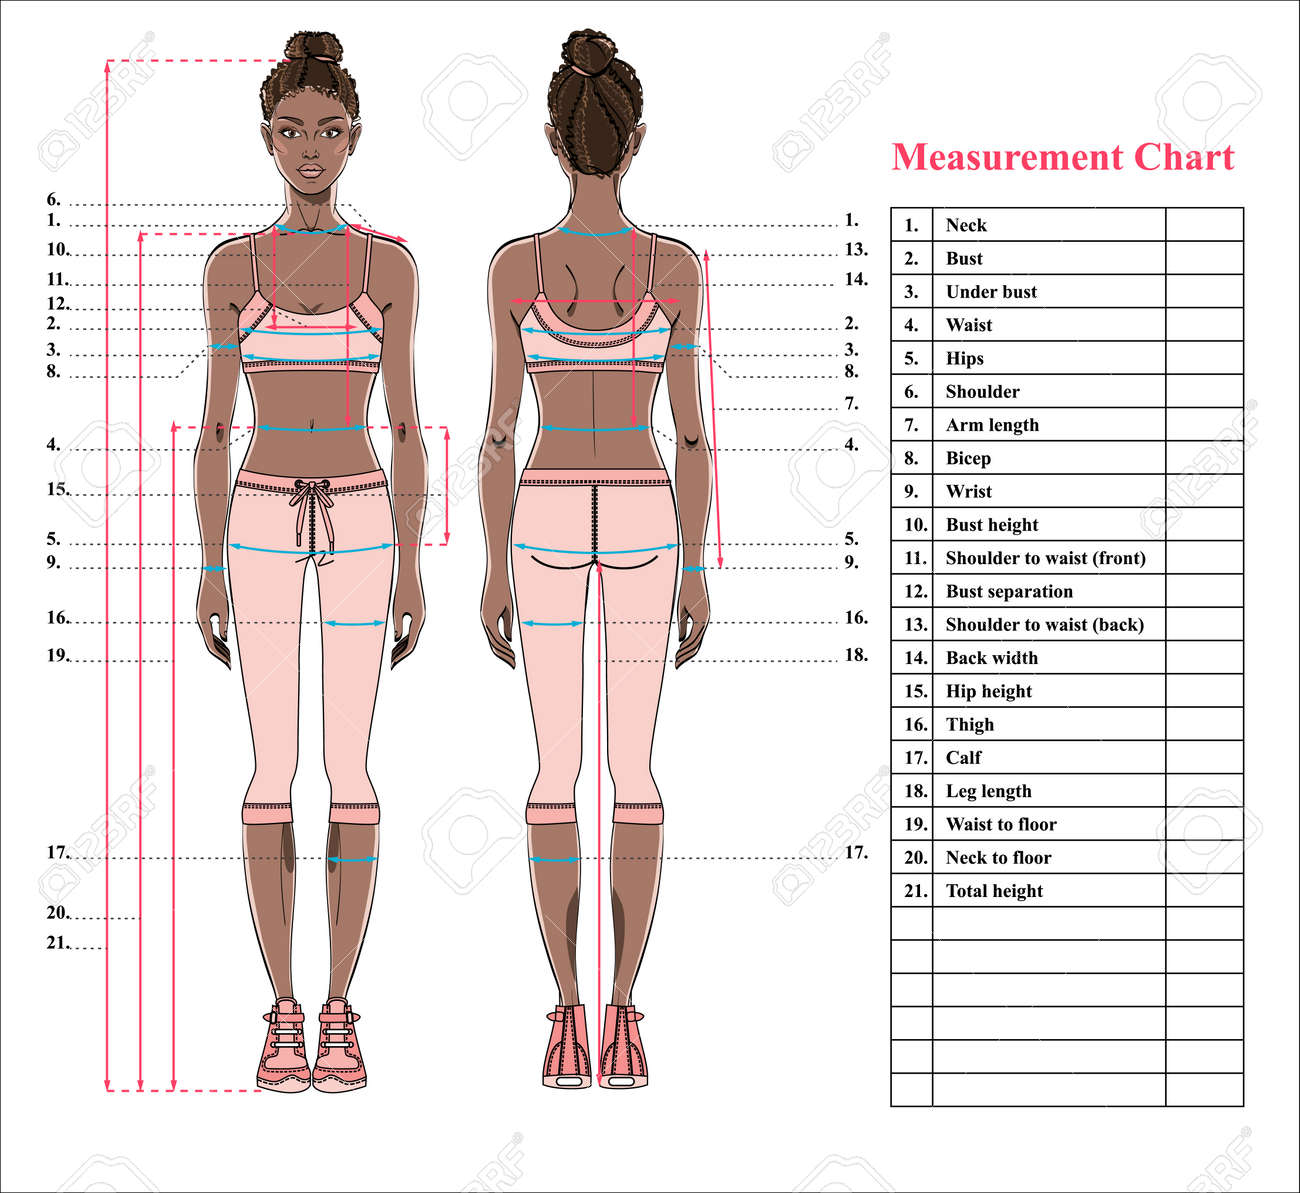 Woman Body Measurement Chart Scheme For Measurement Human Body Royalty Free Cliparts Vectors And Stock Illustration Image 97129692